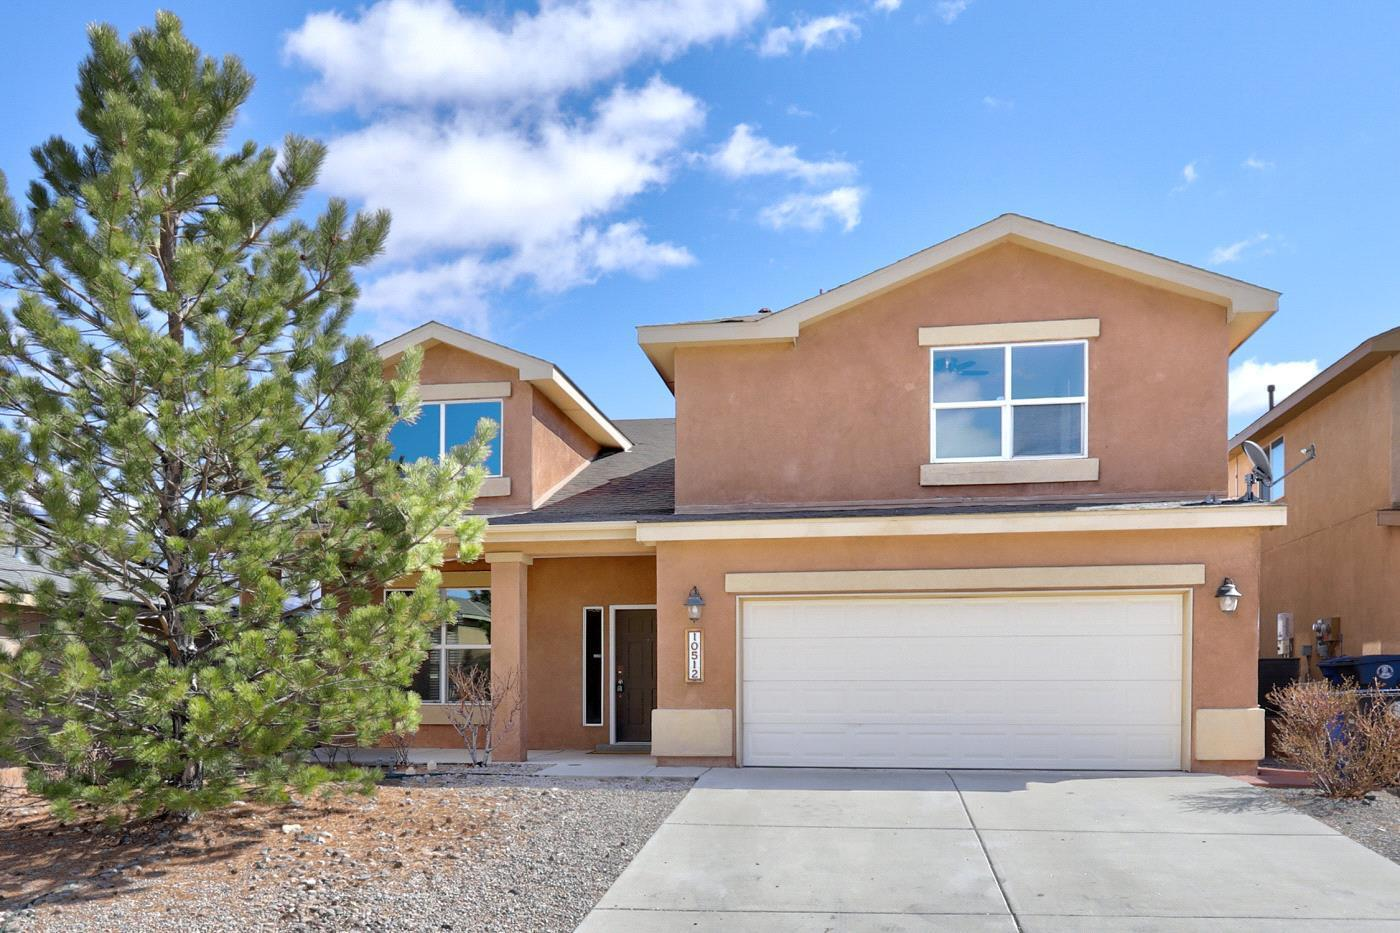 Come and take a look at this beautiful home located in Ventana Ranch.  Upgrades include vaulted ceilings, double staircase and a large backyard! Master bedroom includes a large bathroom with double vanities, walk in closets and a beautiful deck. All bedrooms are spacious and all have walk in closets. The upstairs loft would make the perfect space for a home office or classroom. 2 separate living areas and a ton of natural light.